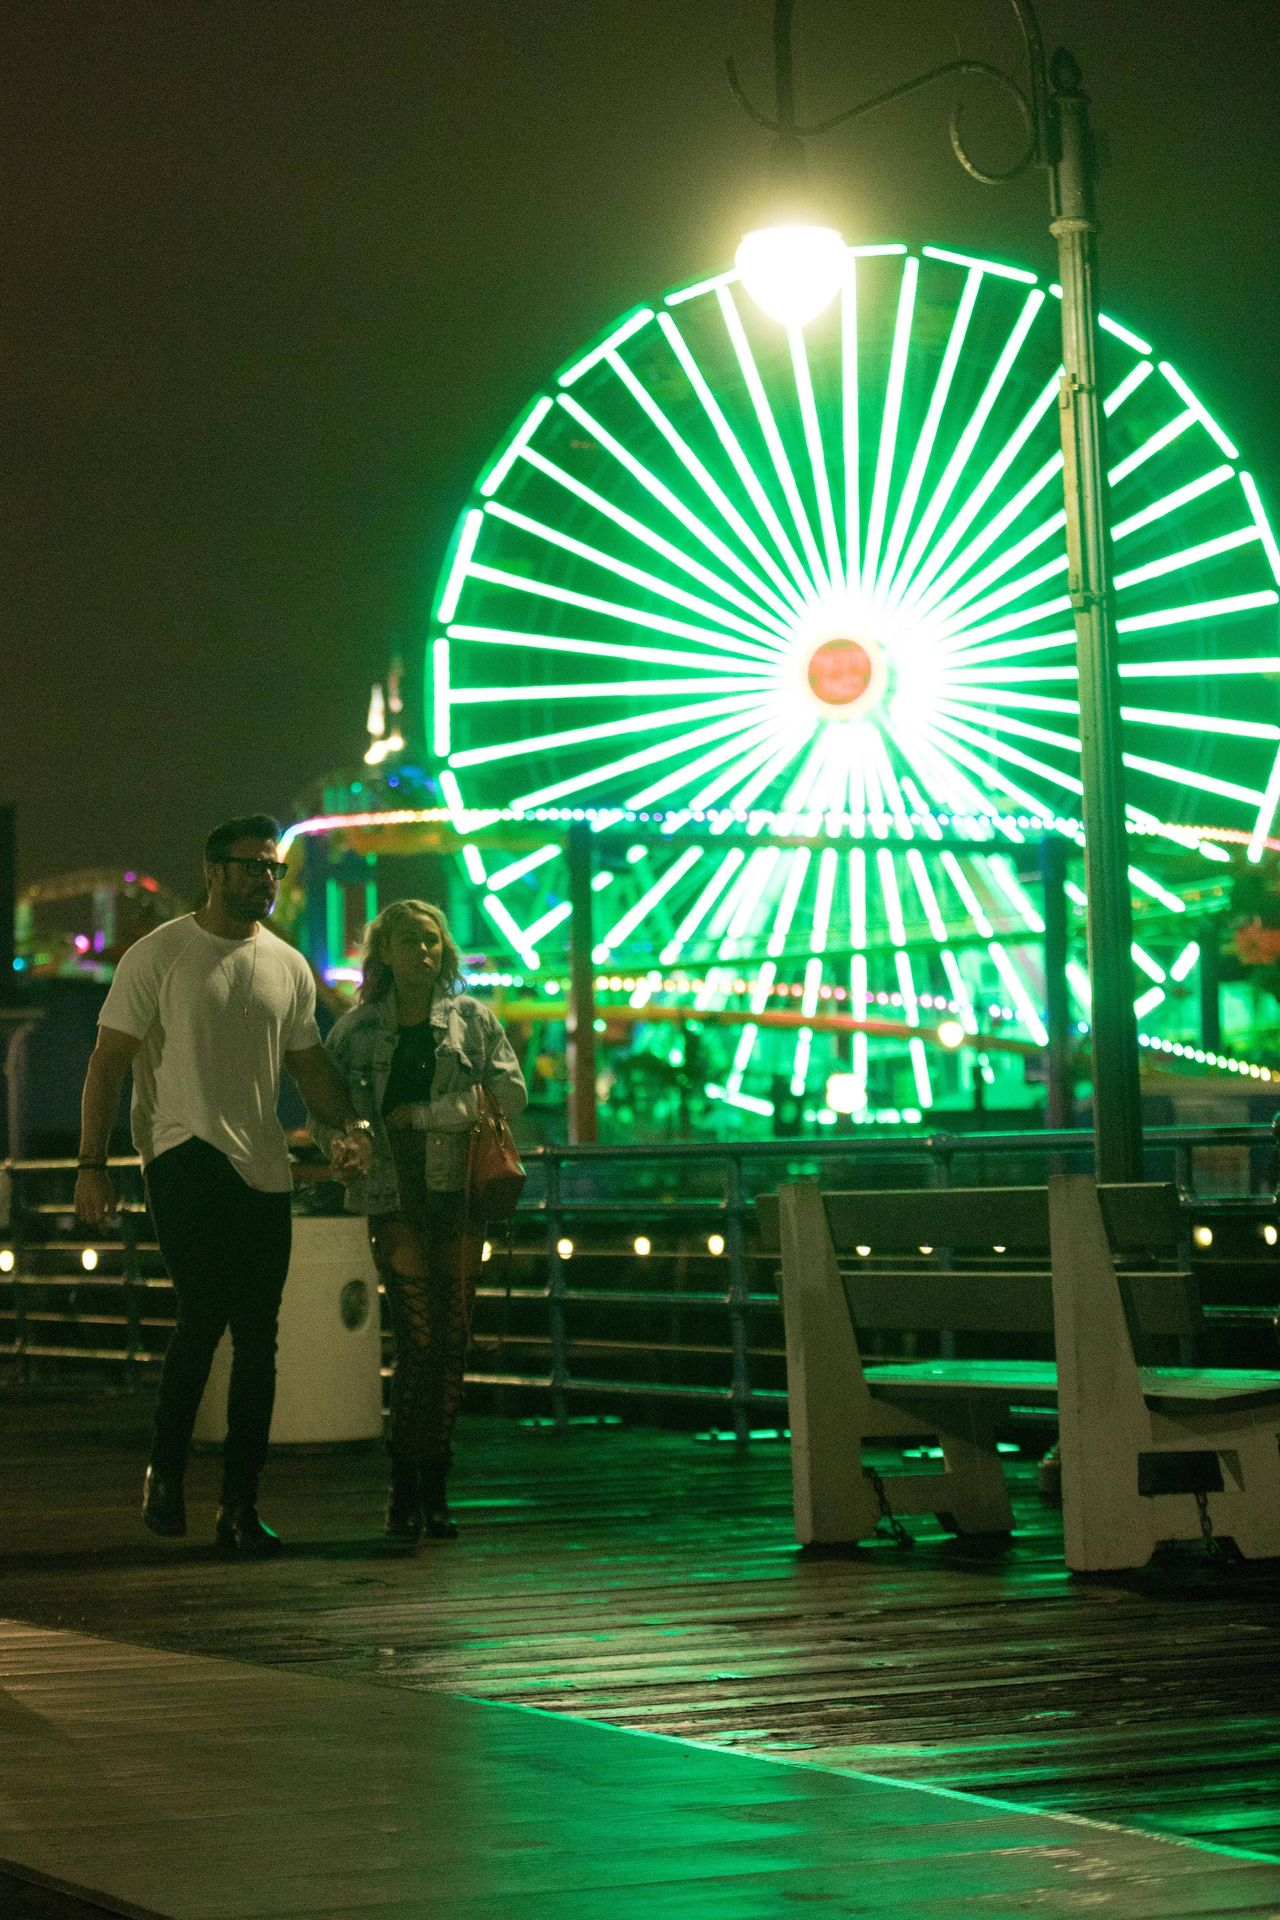 Chad Johnson & Annalise Mishler Are Seen On A Low Key Date At The Santa Monica Pier 0004